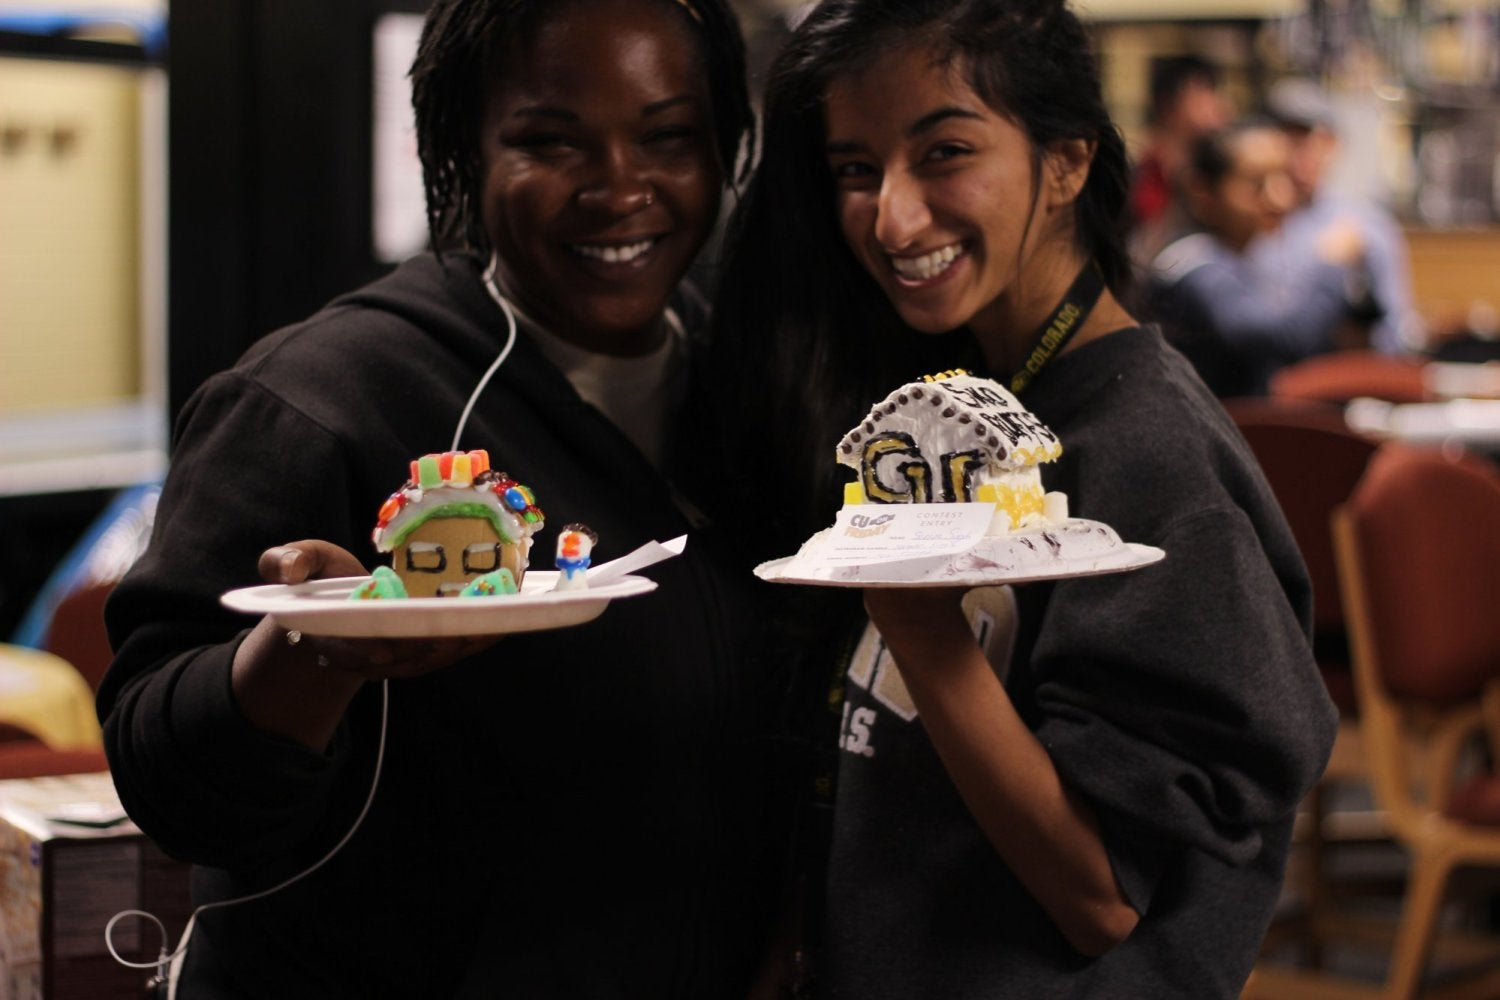 Attendees build gingerbread houses at CU on Friday